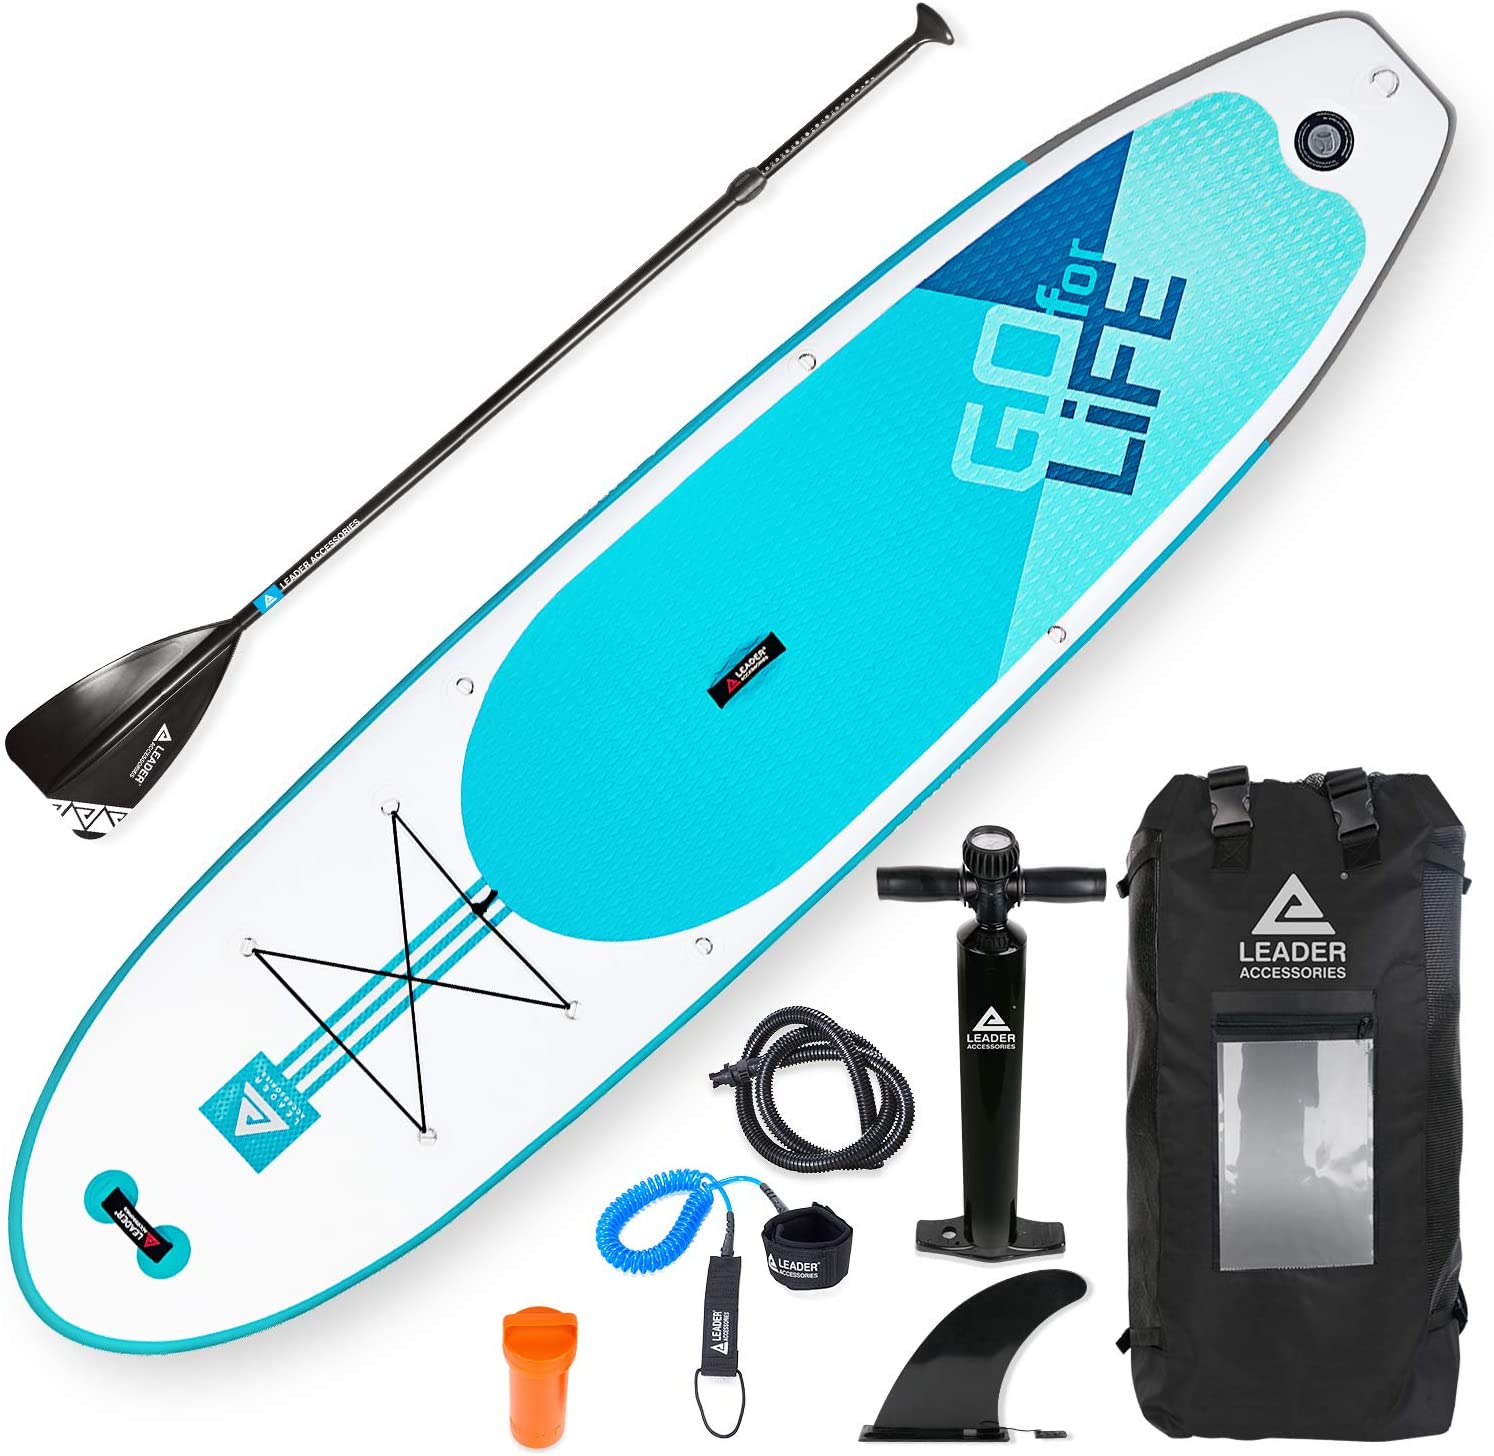 Leader Accessories 10 6 and 11 2 Inflatable Stand Up Board with Fins 6 Thick Includes Adjustable Paddle,Kayak Leash,ISUP Backpack,Pump with Gauge